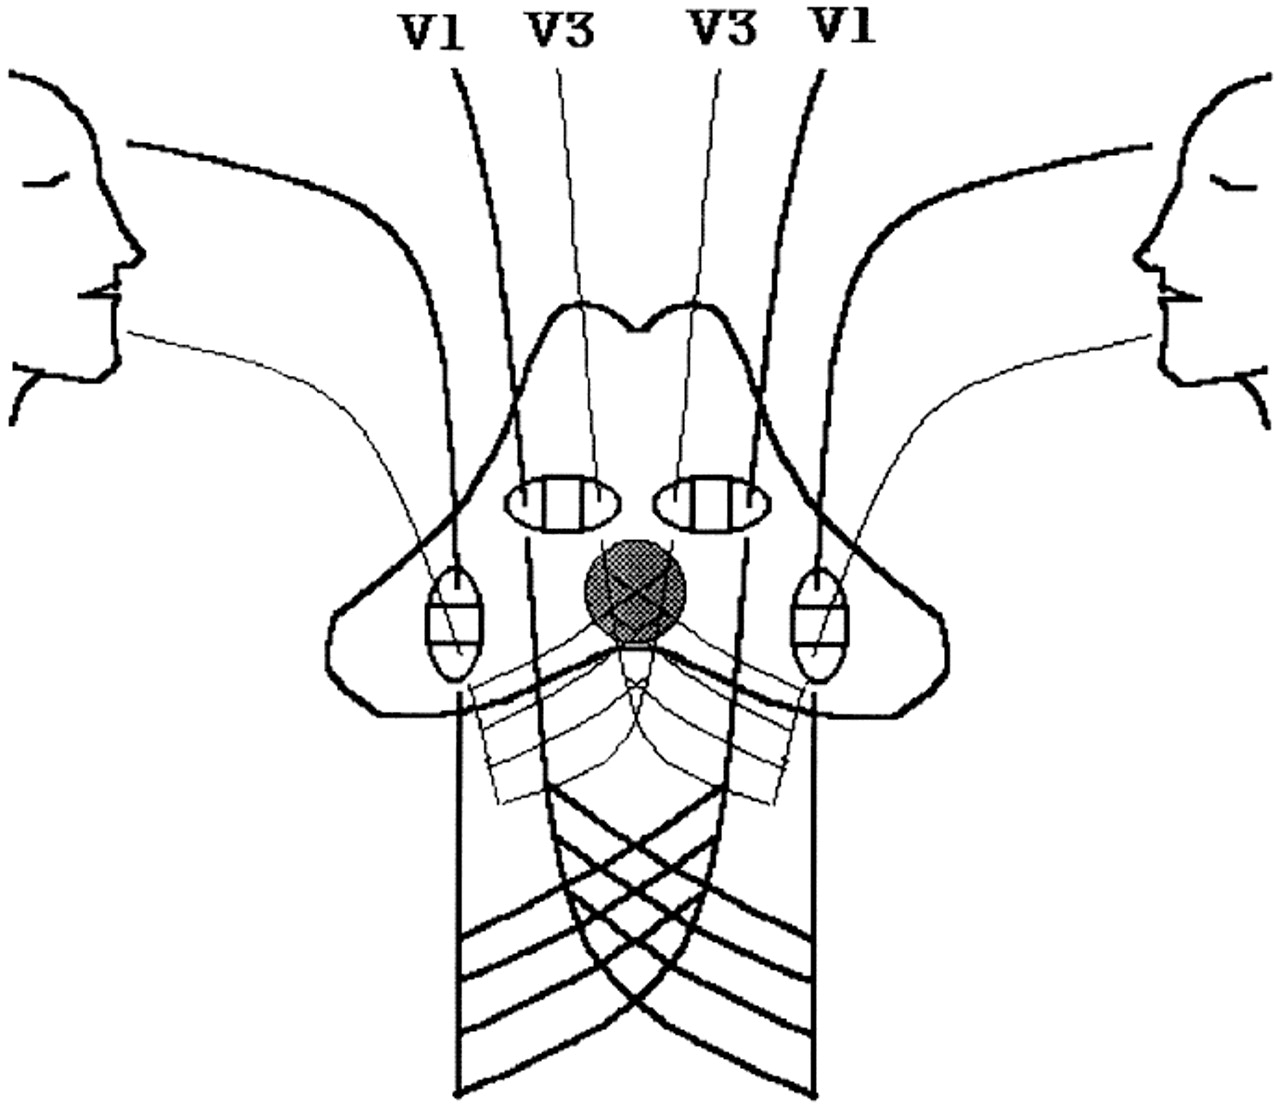 Patterns of sensory dysfunction in lateral medullary infarction